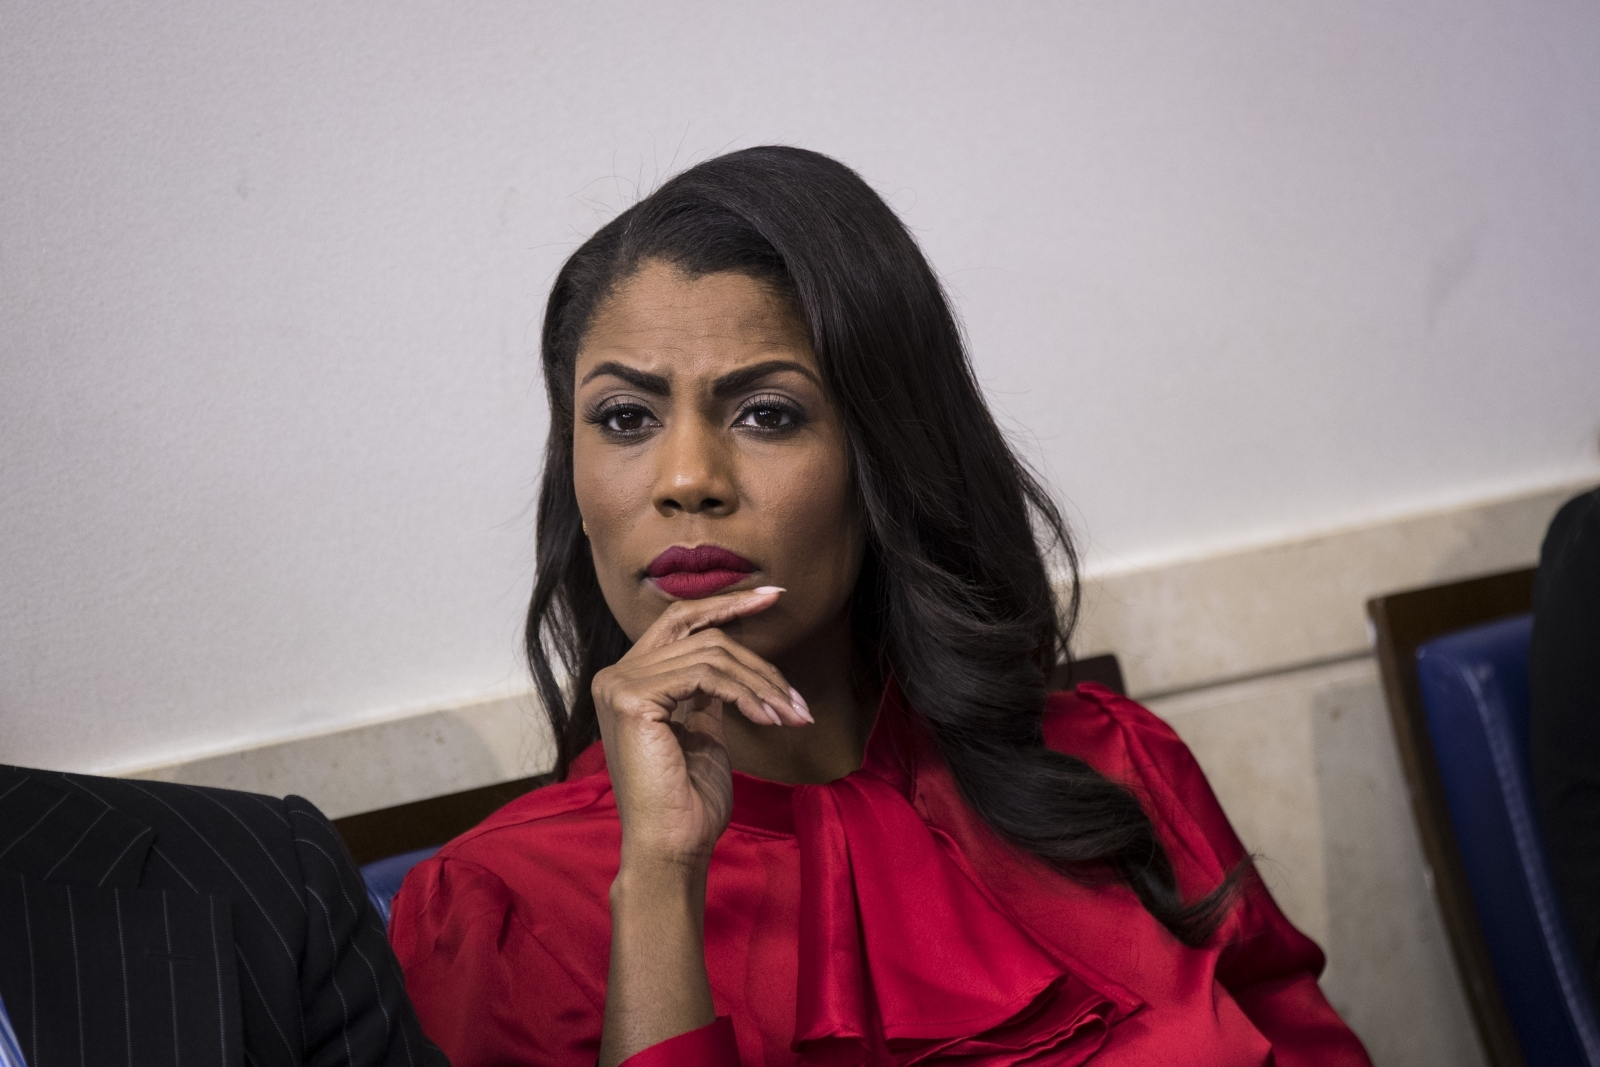 Omarosa Talks Trump on 'Celebrity Big Brother': Public Should Be